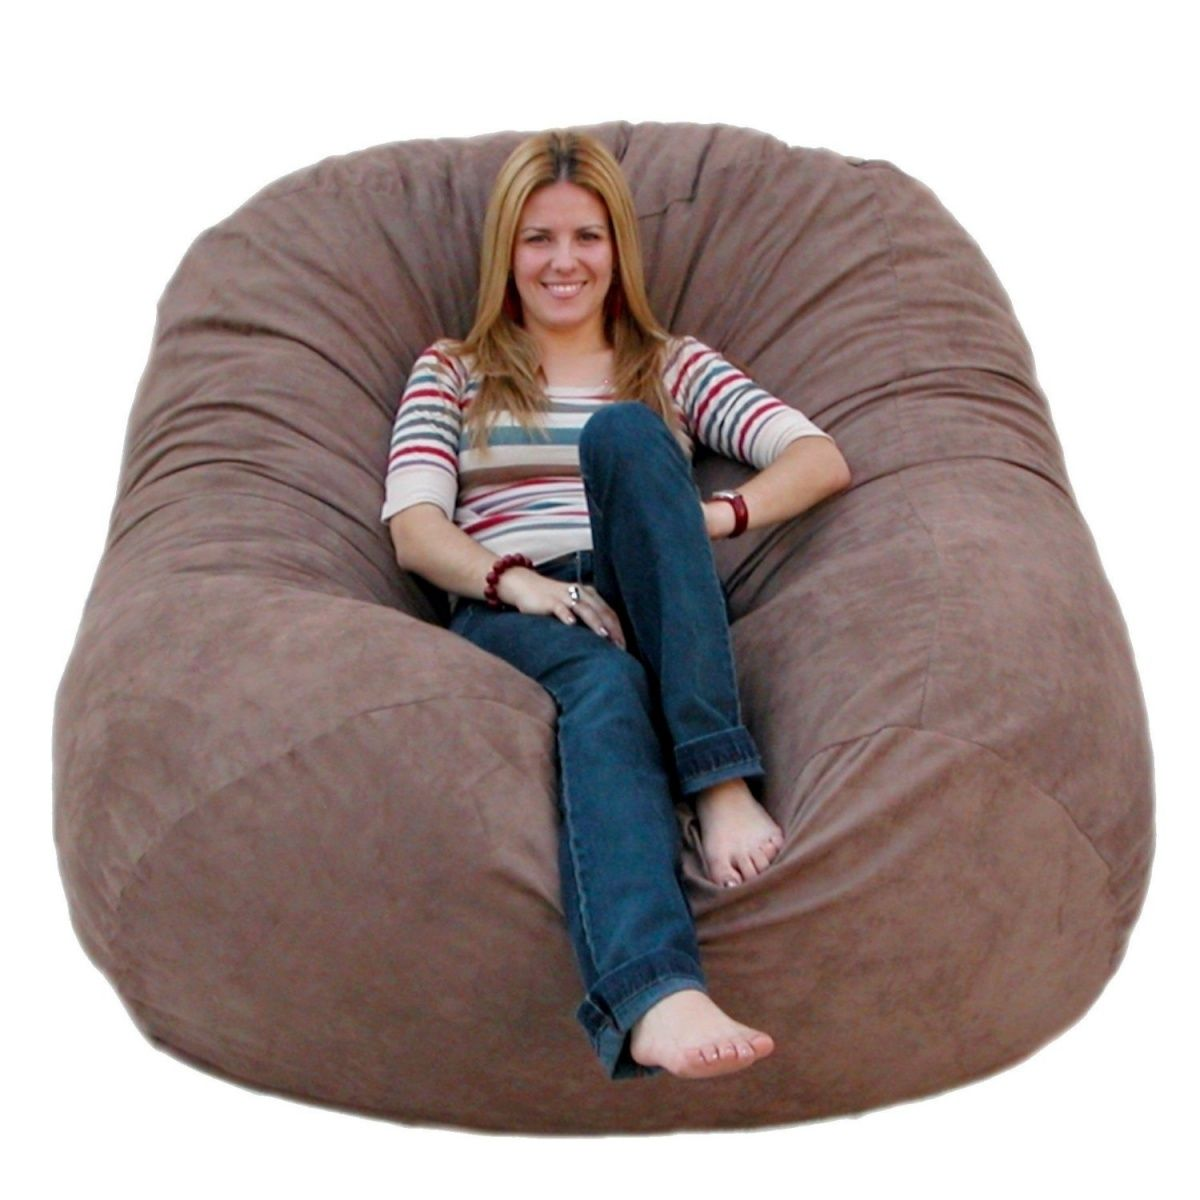 Merveilleux You Can Now Get The Classy, Foam Filled Bean Bag Chairs Youu0027ve Been  Wanting, At A Fraction Of The Cost. Description From Snoozesak.com.